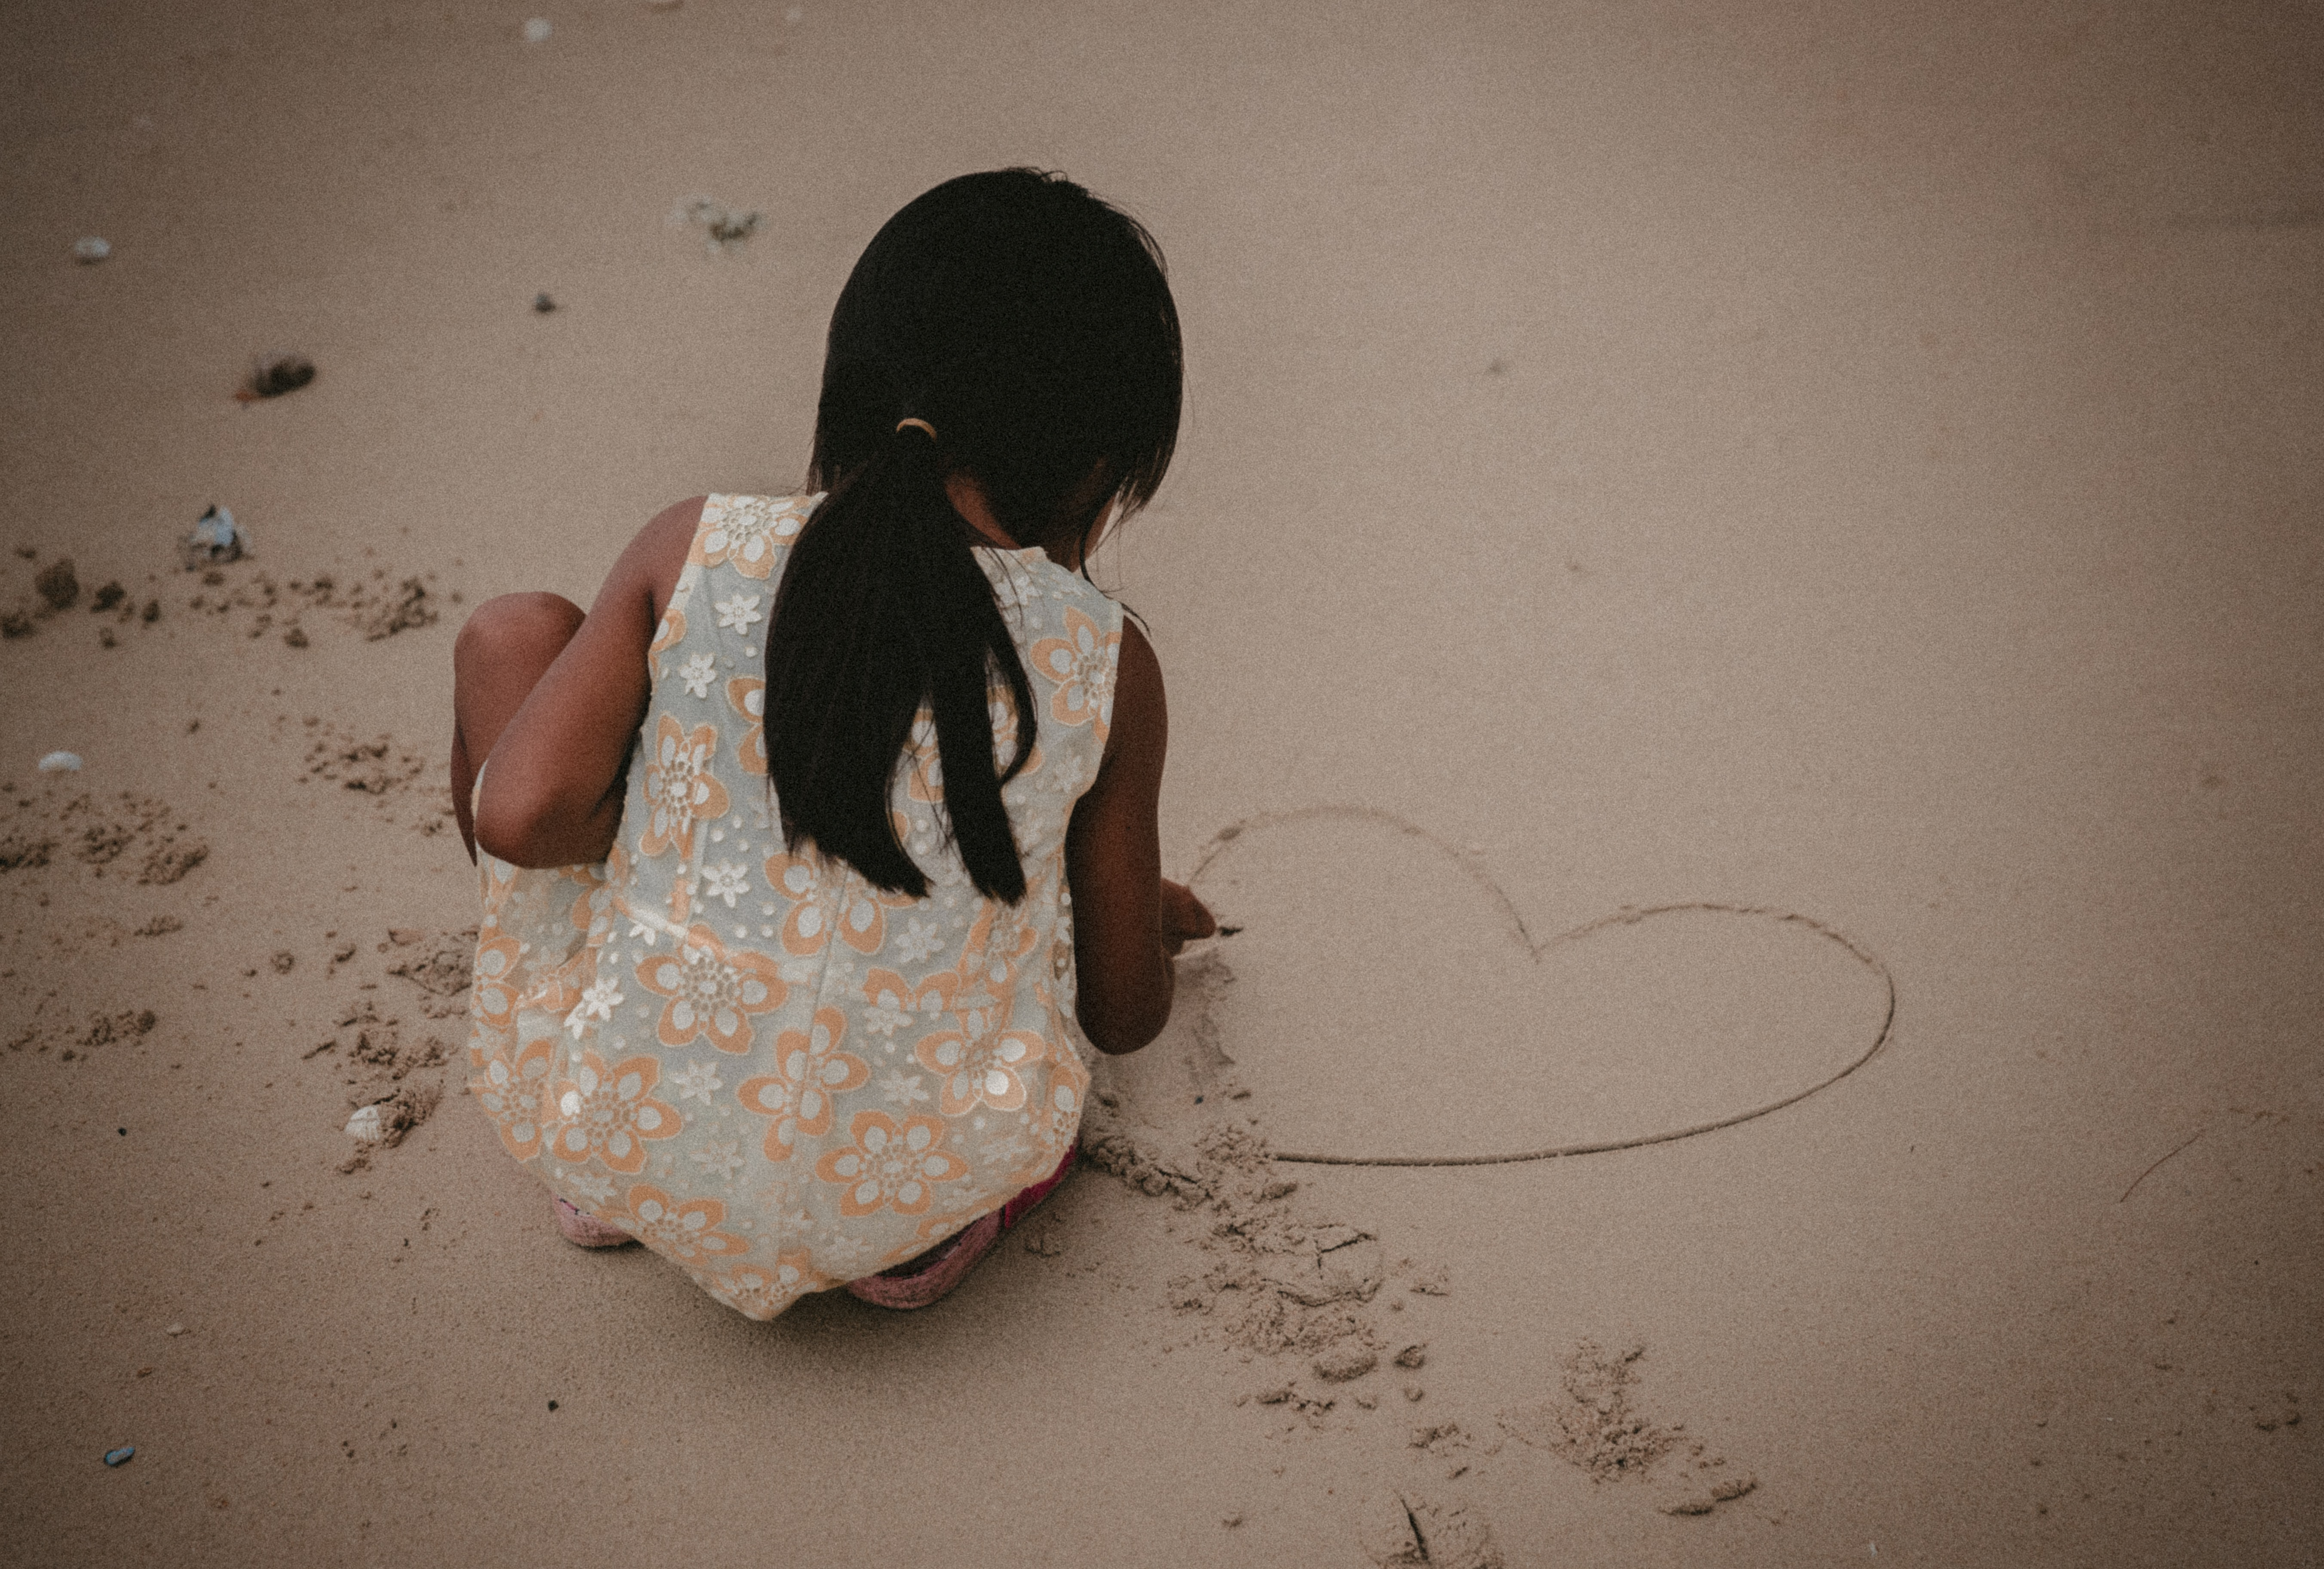 toddler writing heart on sand